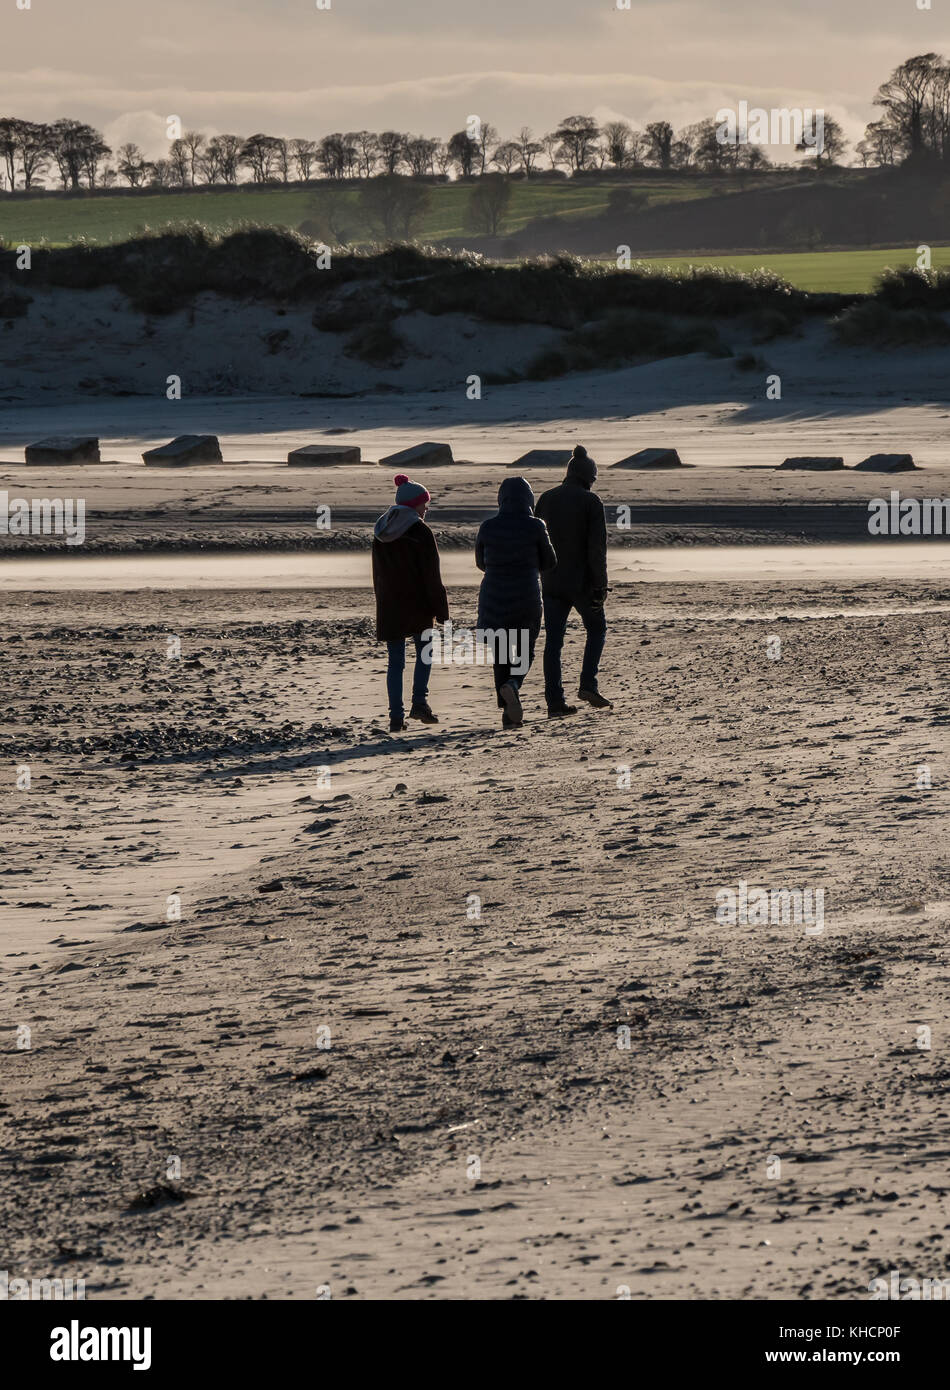 A group of people enjoying a bracing walk on the beach at Alnmouth, Northumberland, UK on a cold winter afternoon - Stock Image